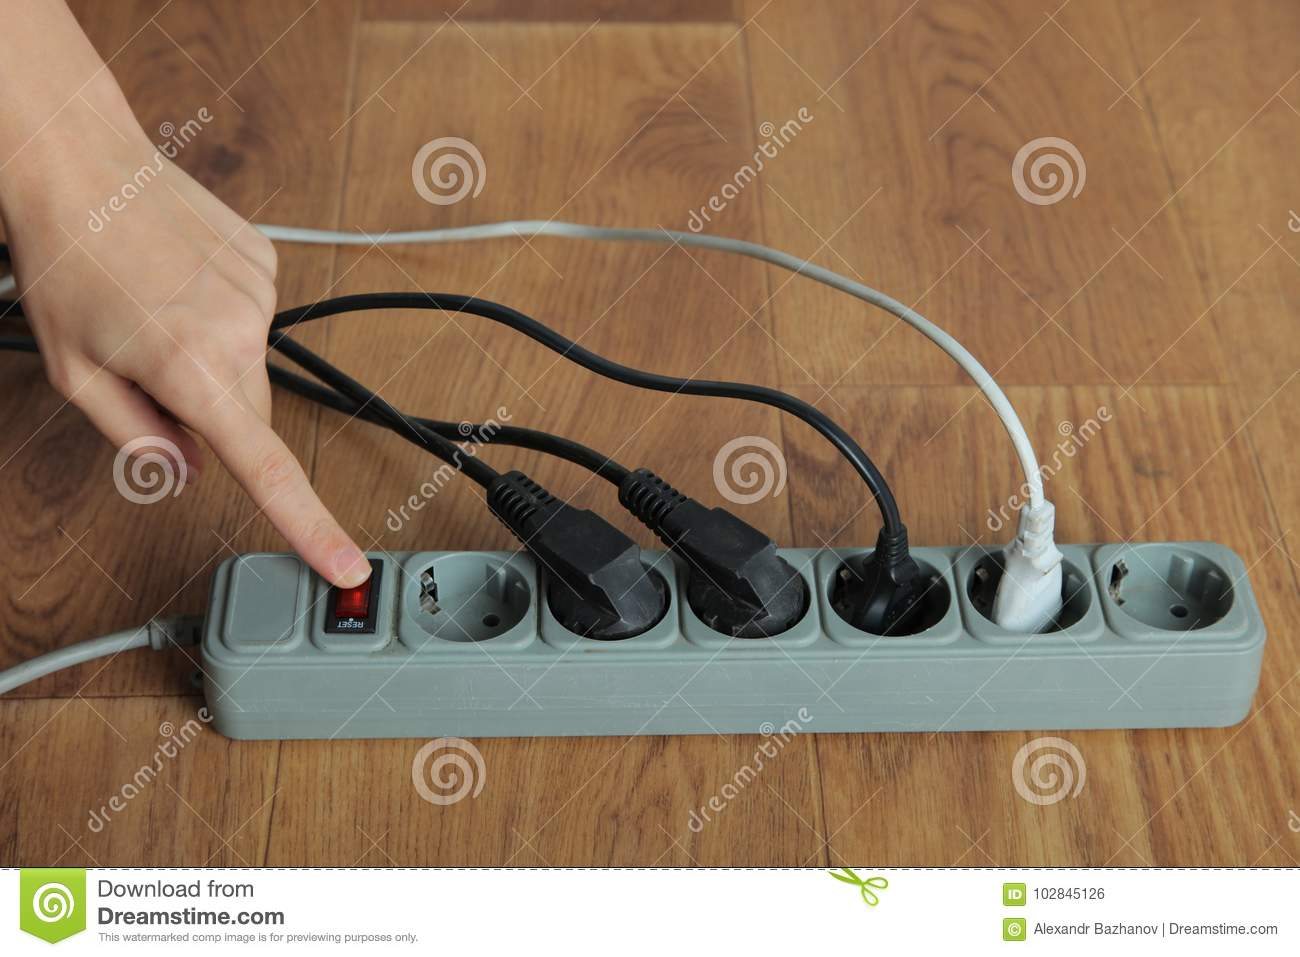 Electrical Extension Cord Stock Photo Image Of Energized 102845126 Wiring To Switch Download